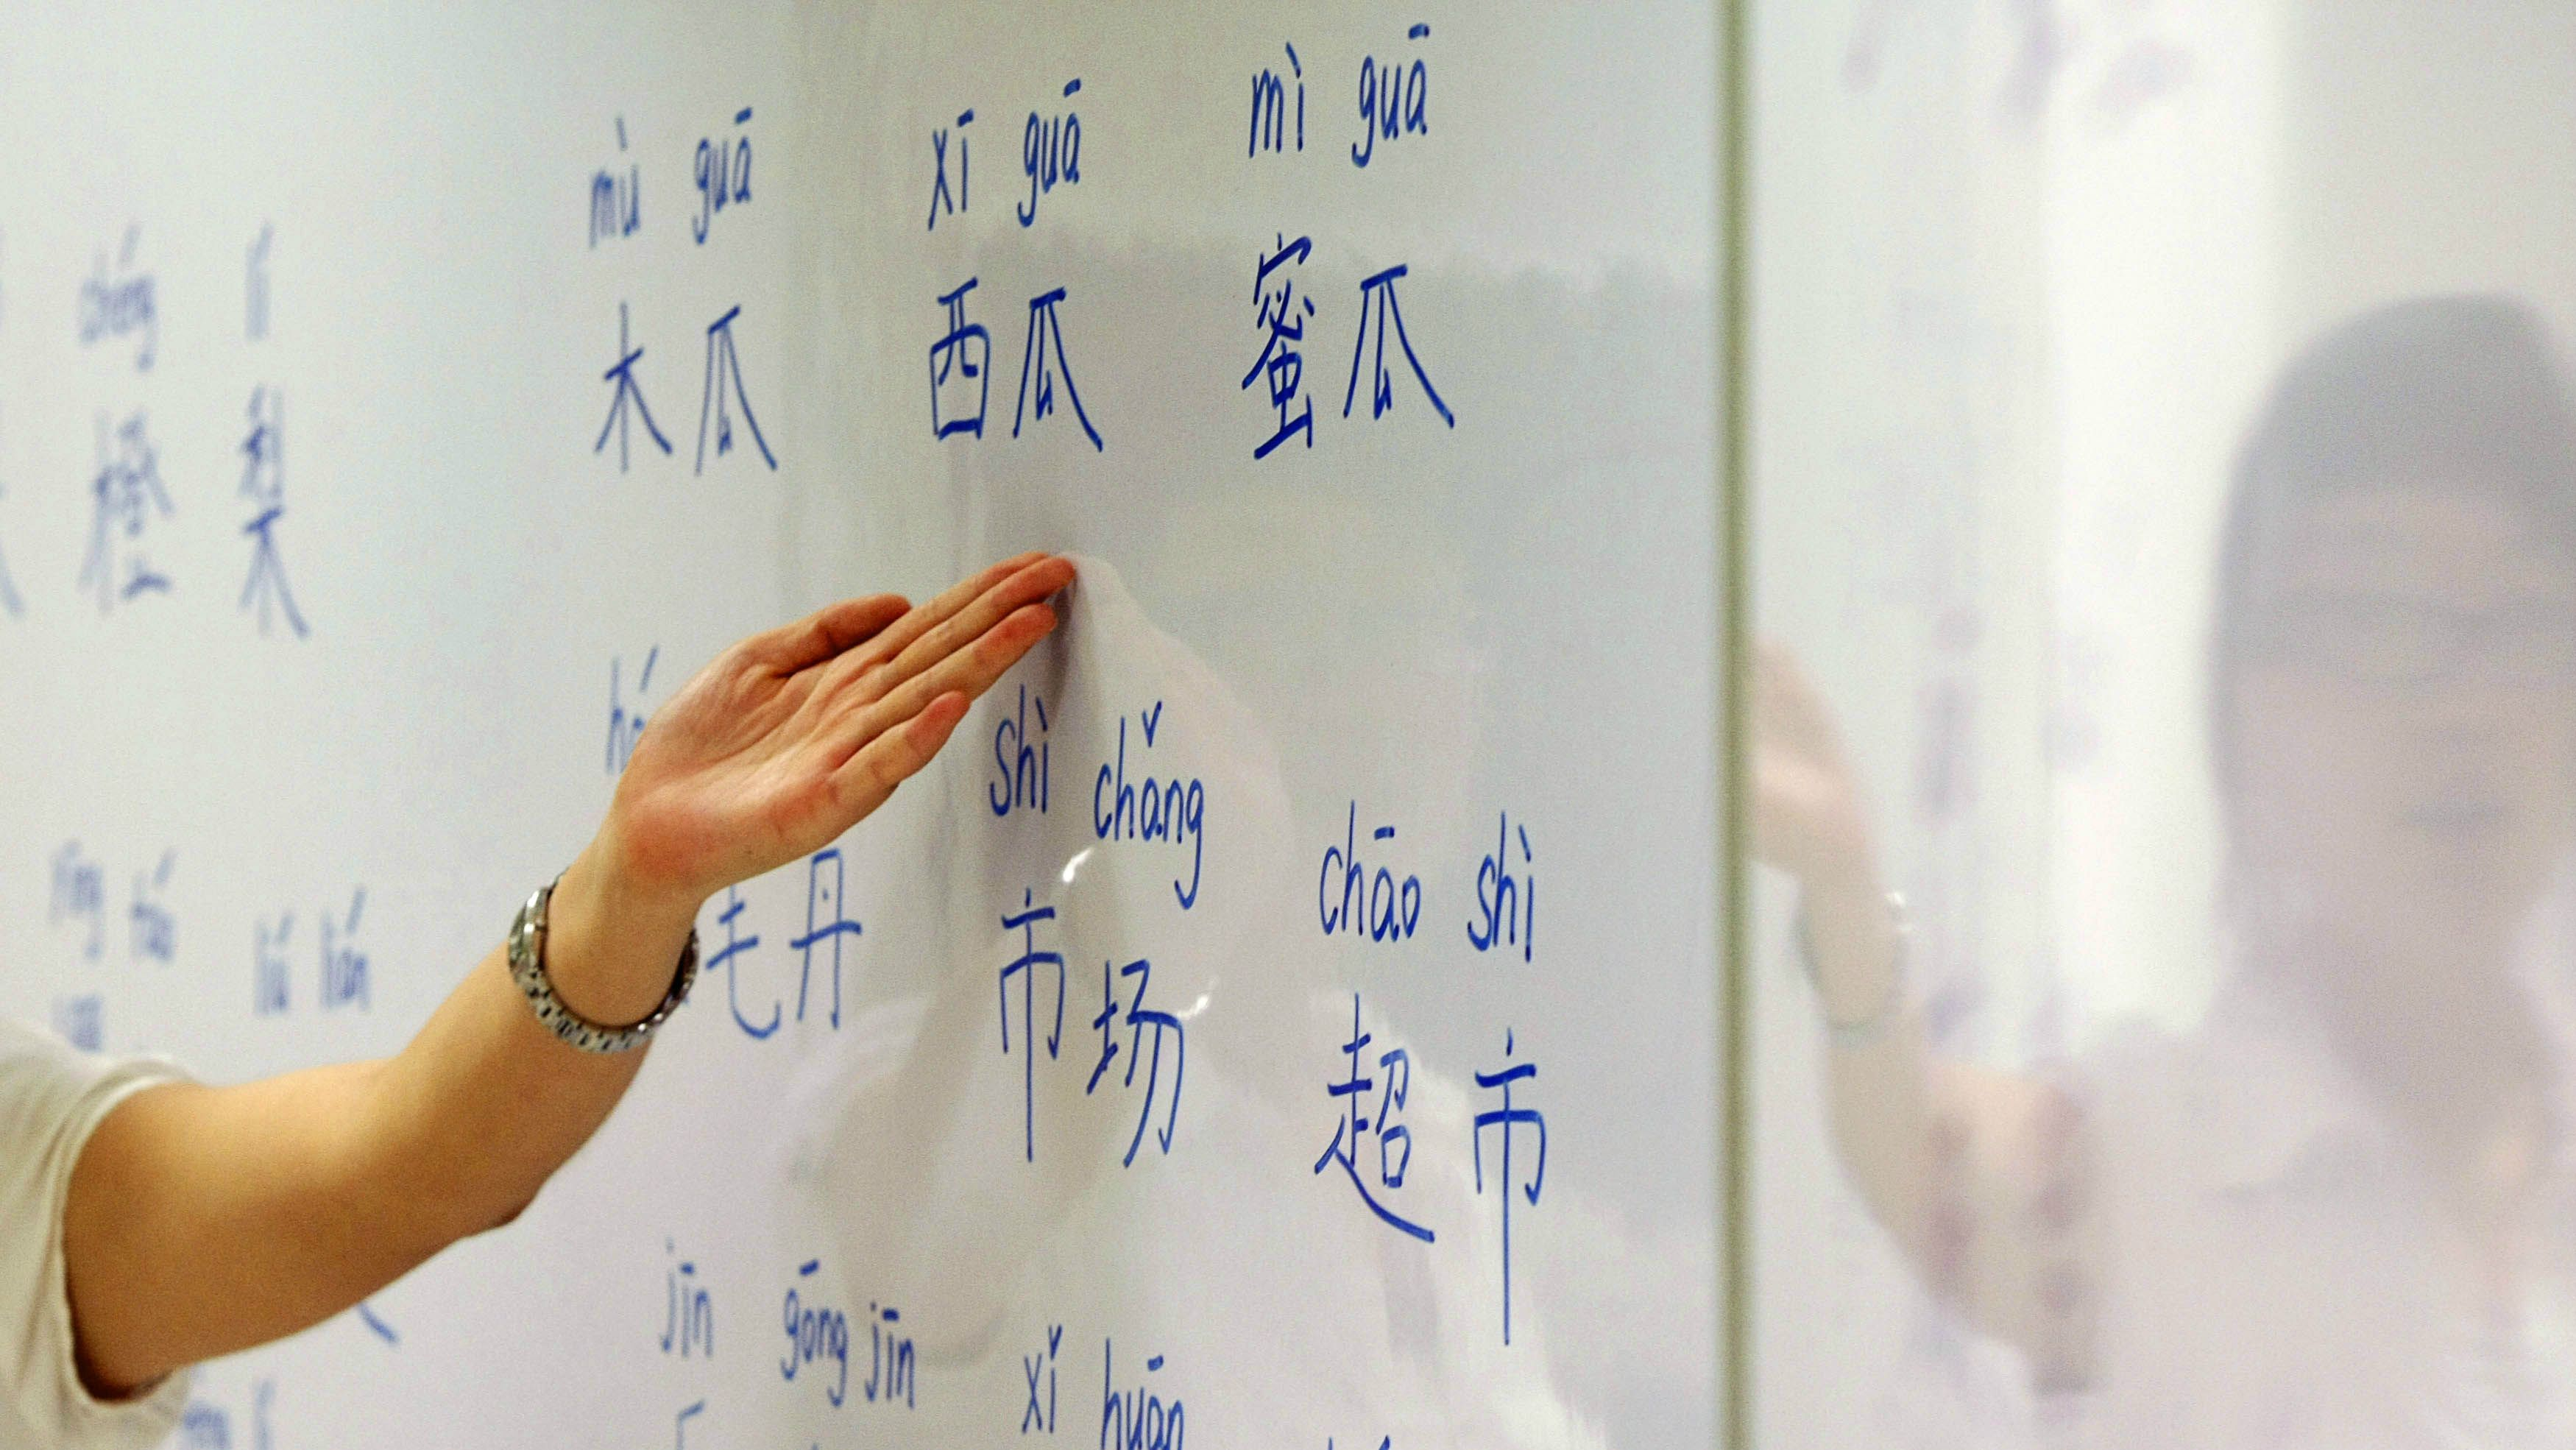 Chinese language instruction in Singapore